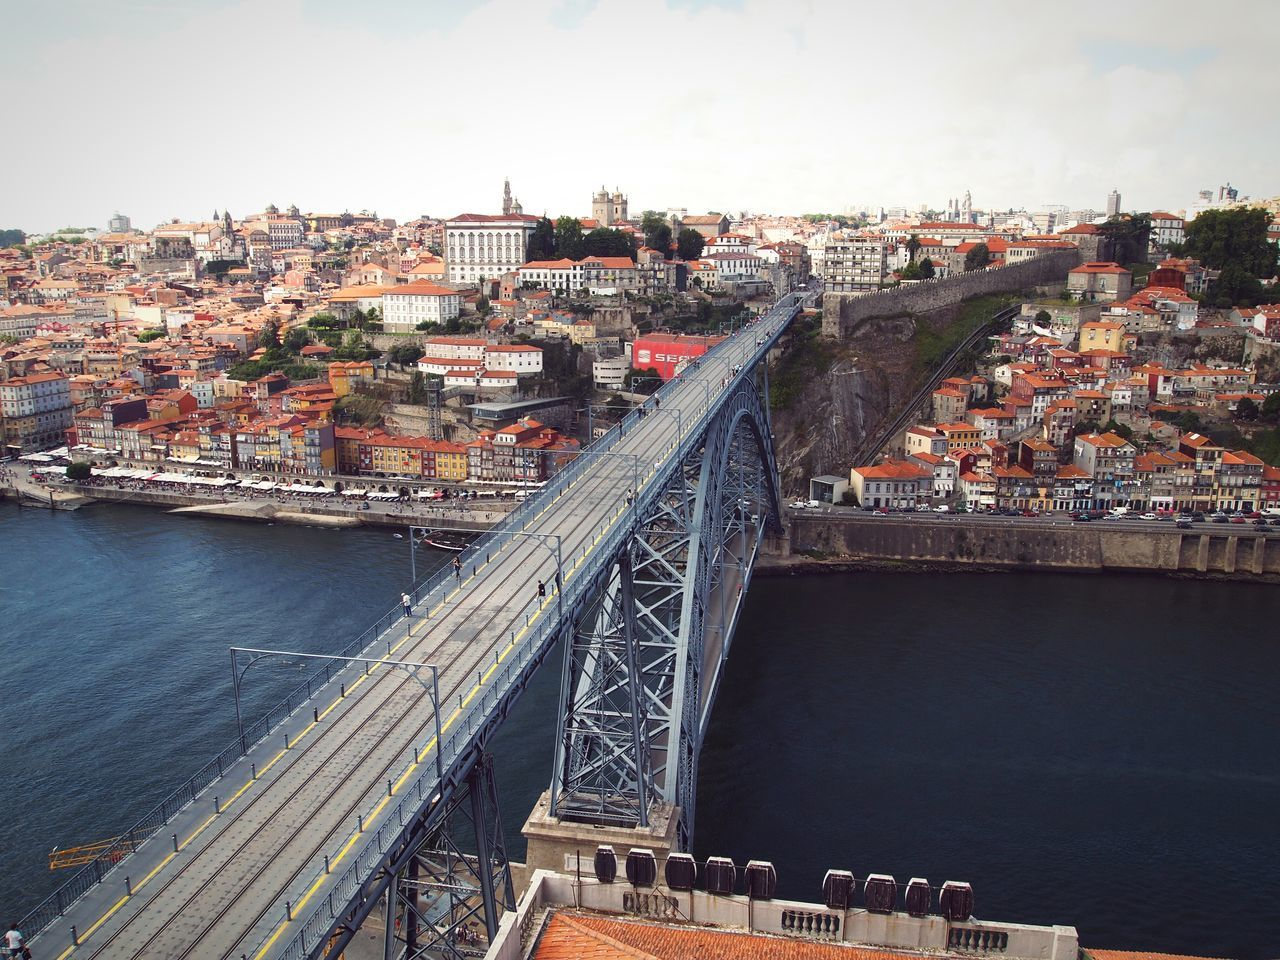 Douro view City Bridge - Man Made Structure Architecture Outdoors Built Structure Cityscape Cloud - Sky Building Exterior Travel Destinations Travel River Urban Skyline Porto Portugal Douro  Water Banks EyeEm Best Shots EyeEm Gallery Eye4photography